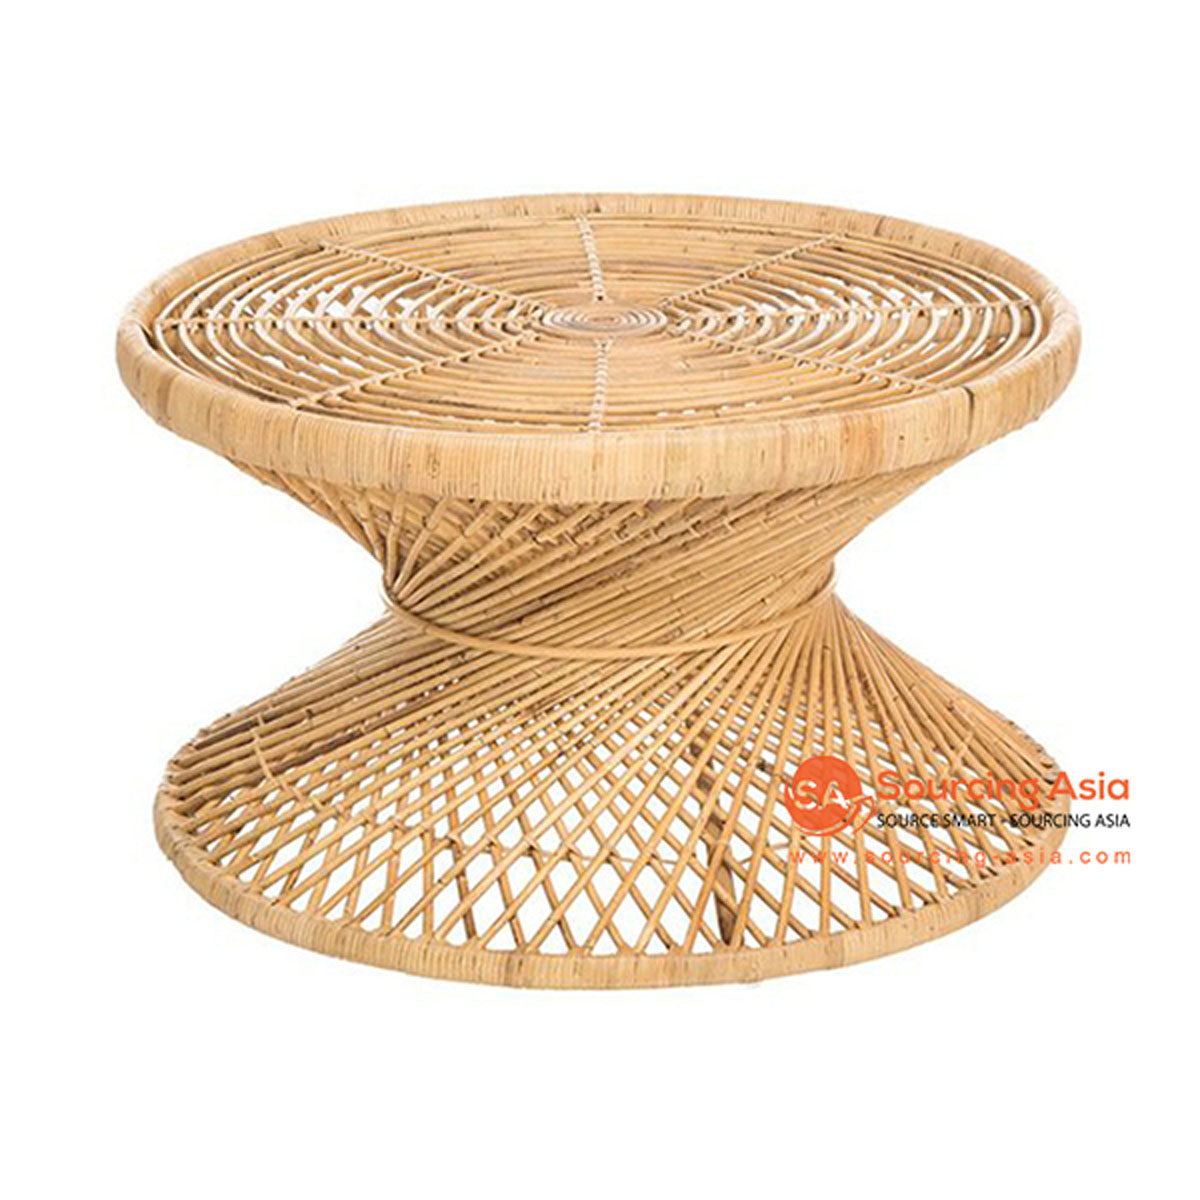 SHL157 NATURAL RATTAN LOW TWISTED TABLE WITH WIDE ROUND TOP